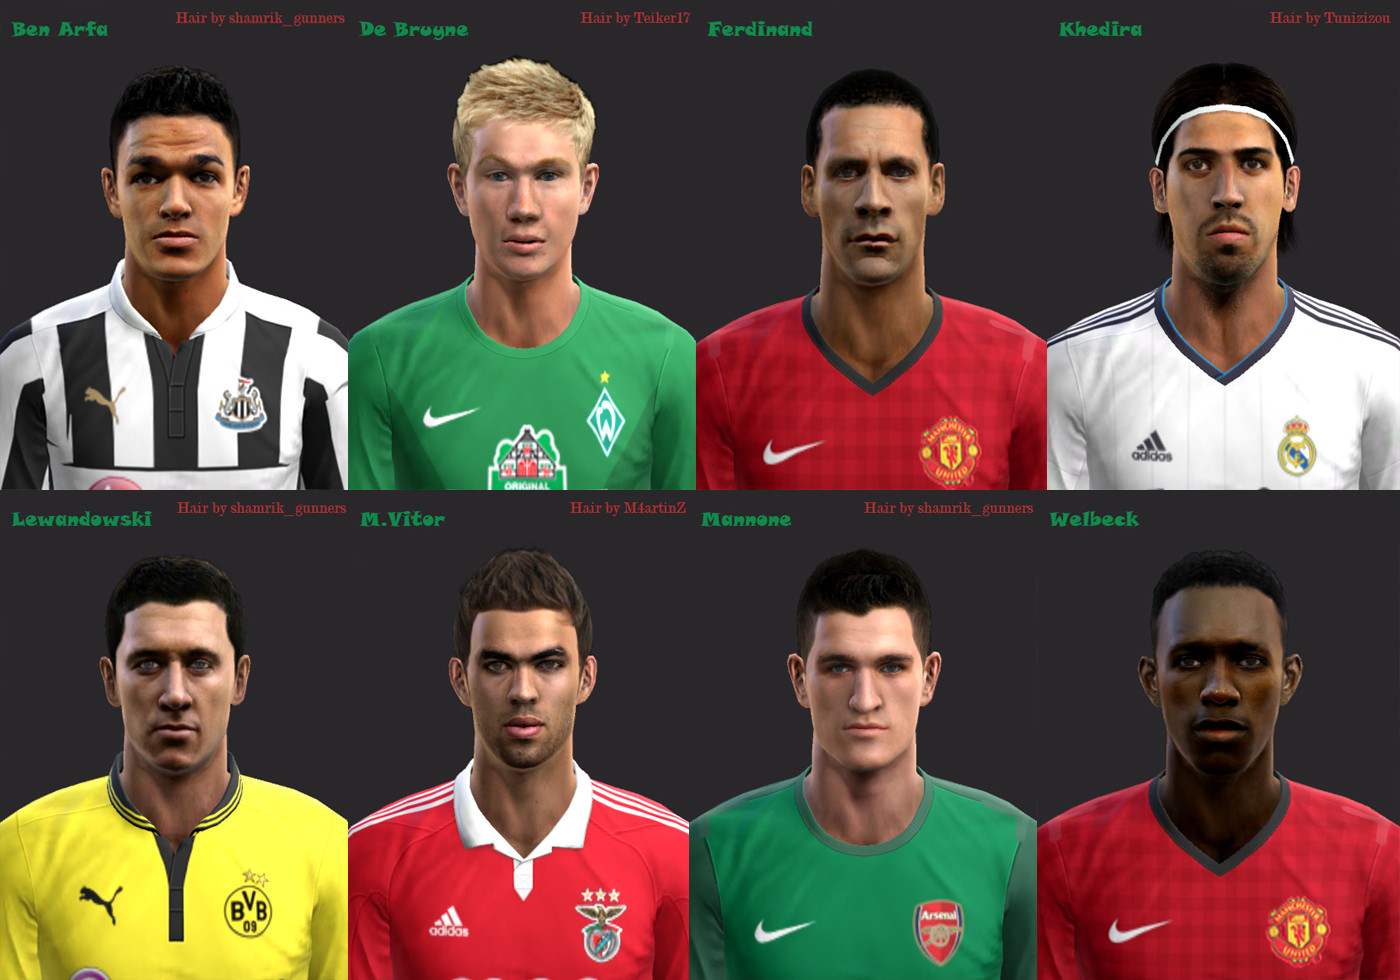 Download International Facepack PES 2013 by Rianwartok | Mediafire